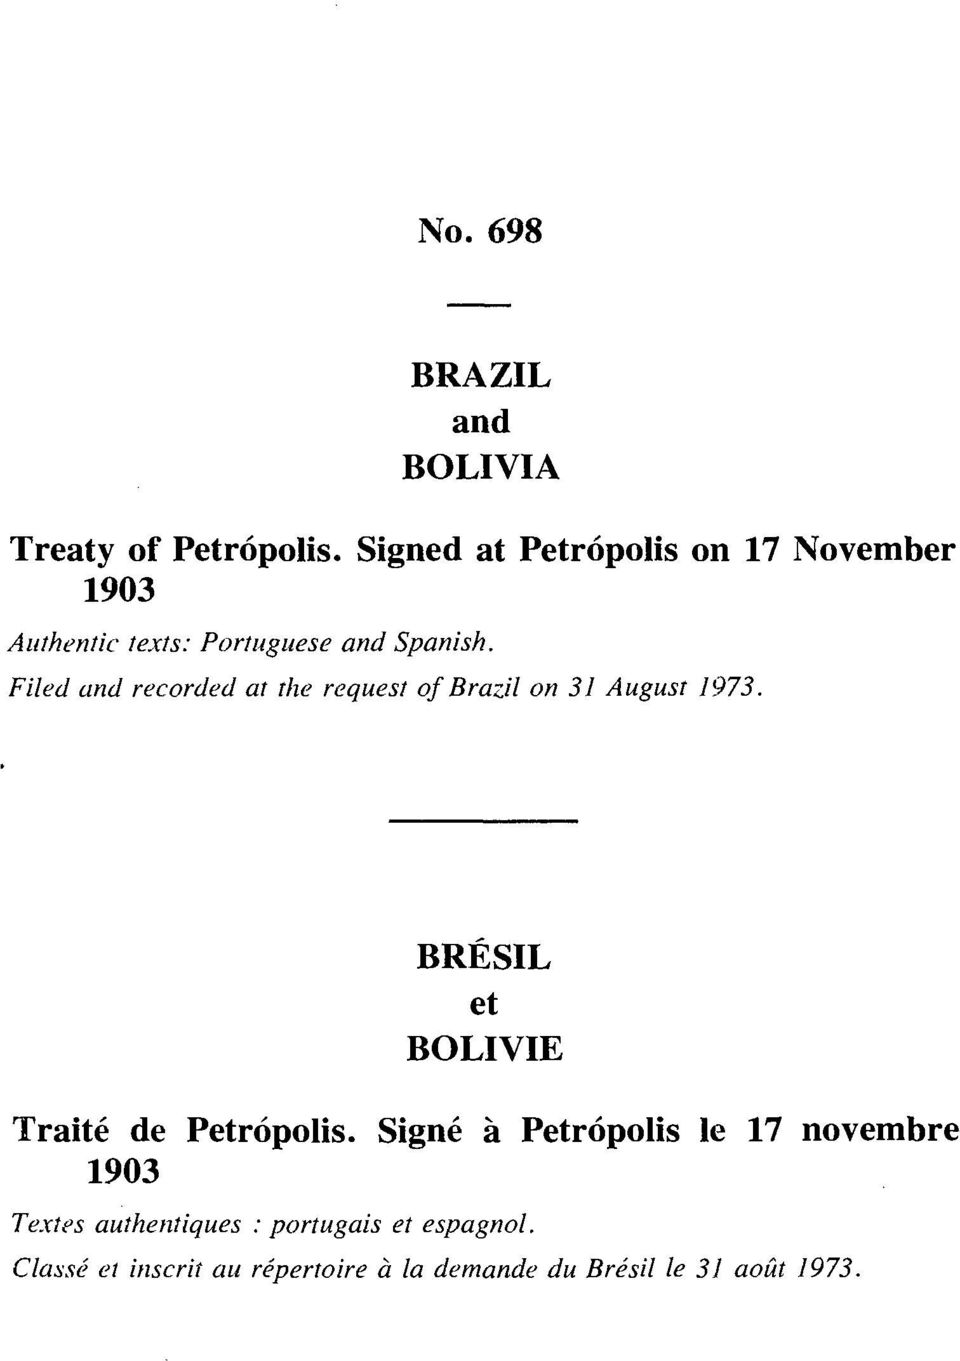 Filed and recorded at the request of Brazil on 31 August 1973.